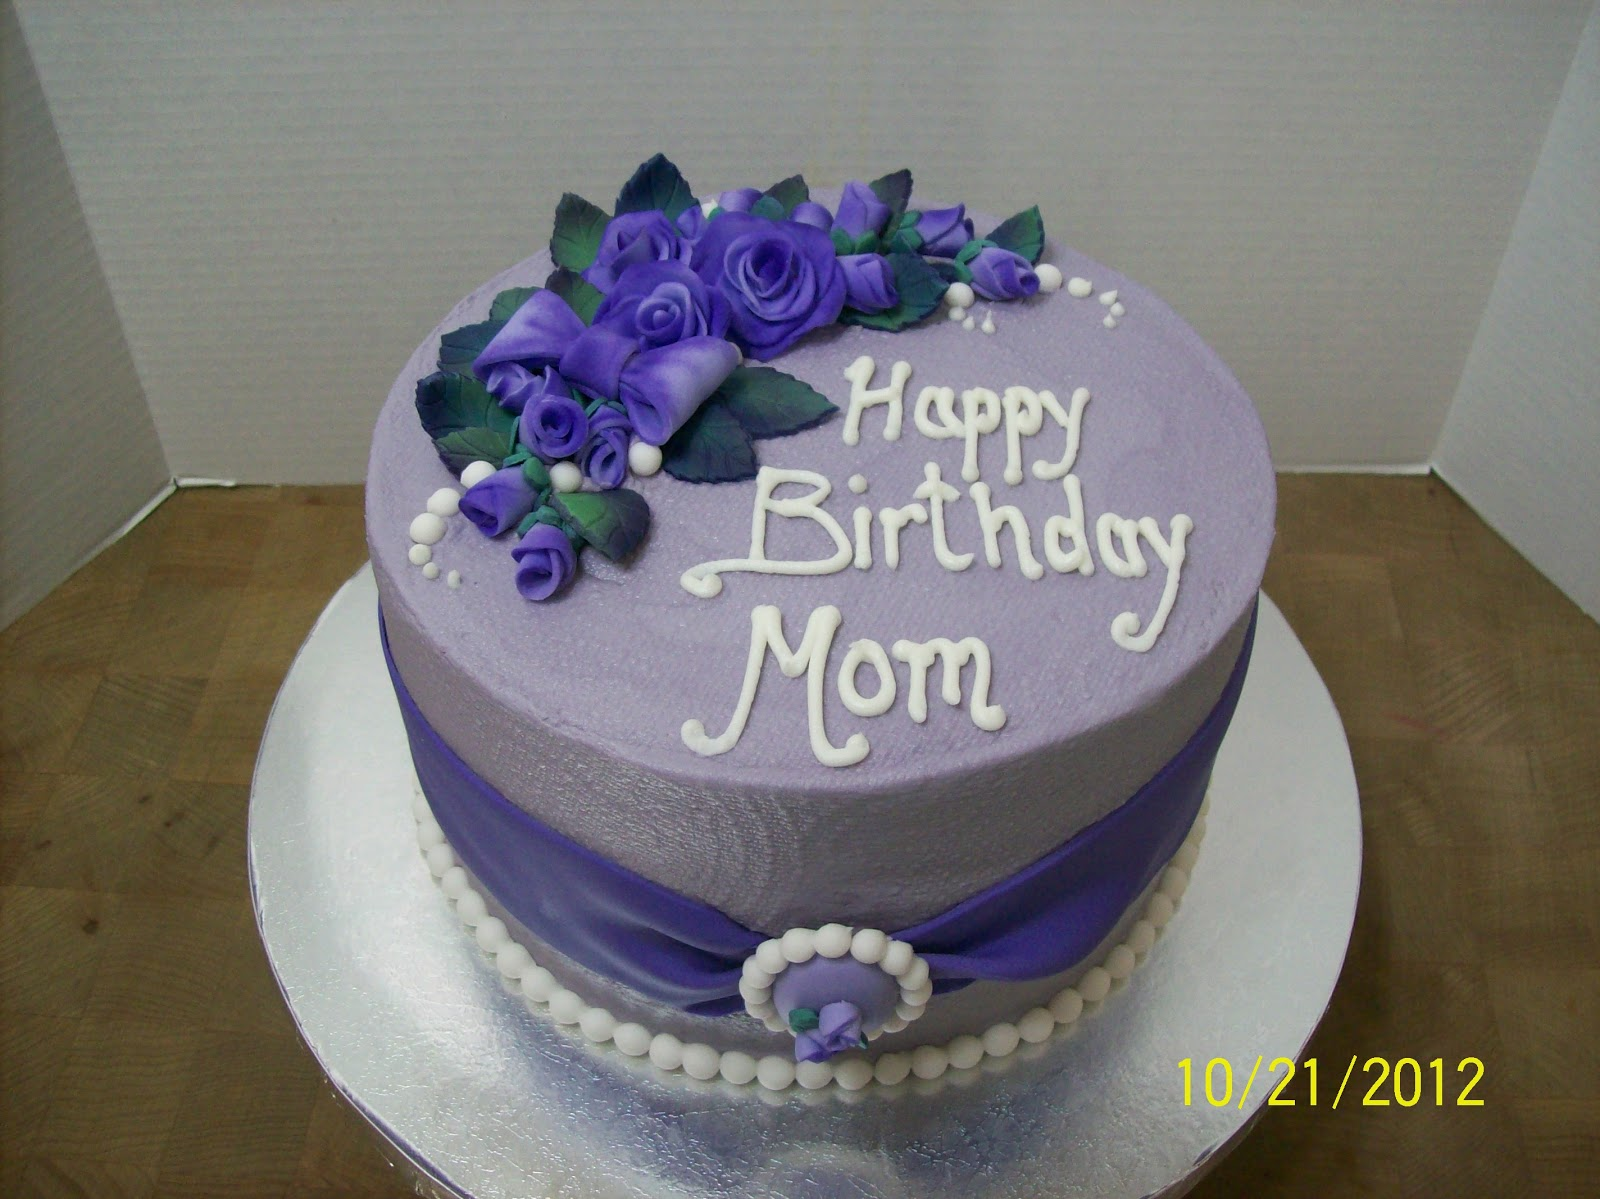 Birthday Cake Ideas For A Mom Image Inspiration of Cake and